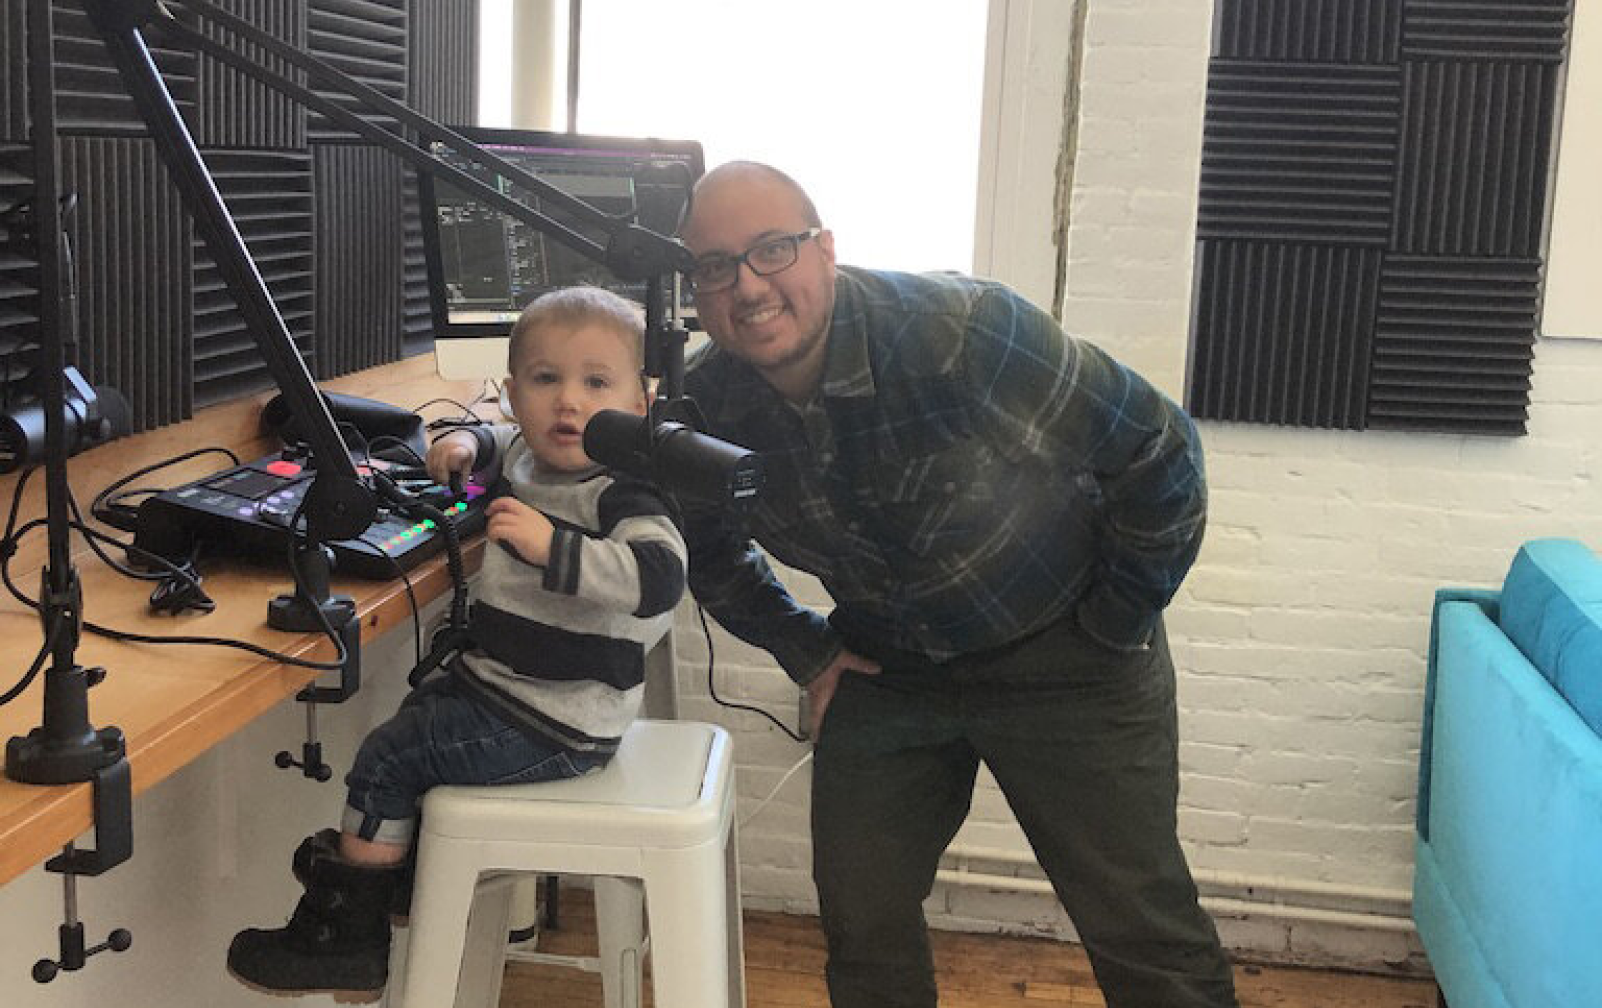 Benn Marine of host of Dirigo Collective's Responsibly Different™ podcast, with his nephew.